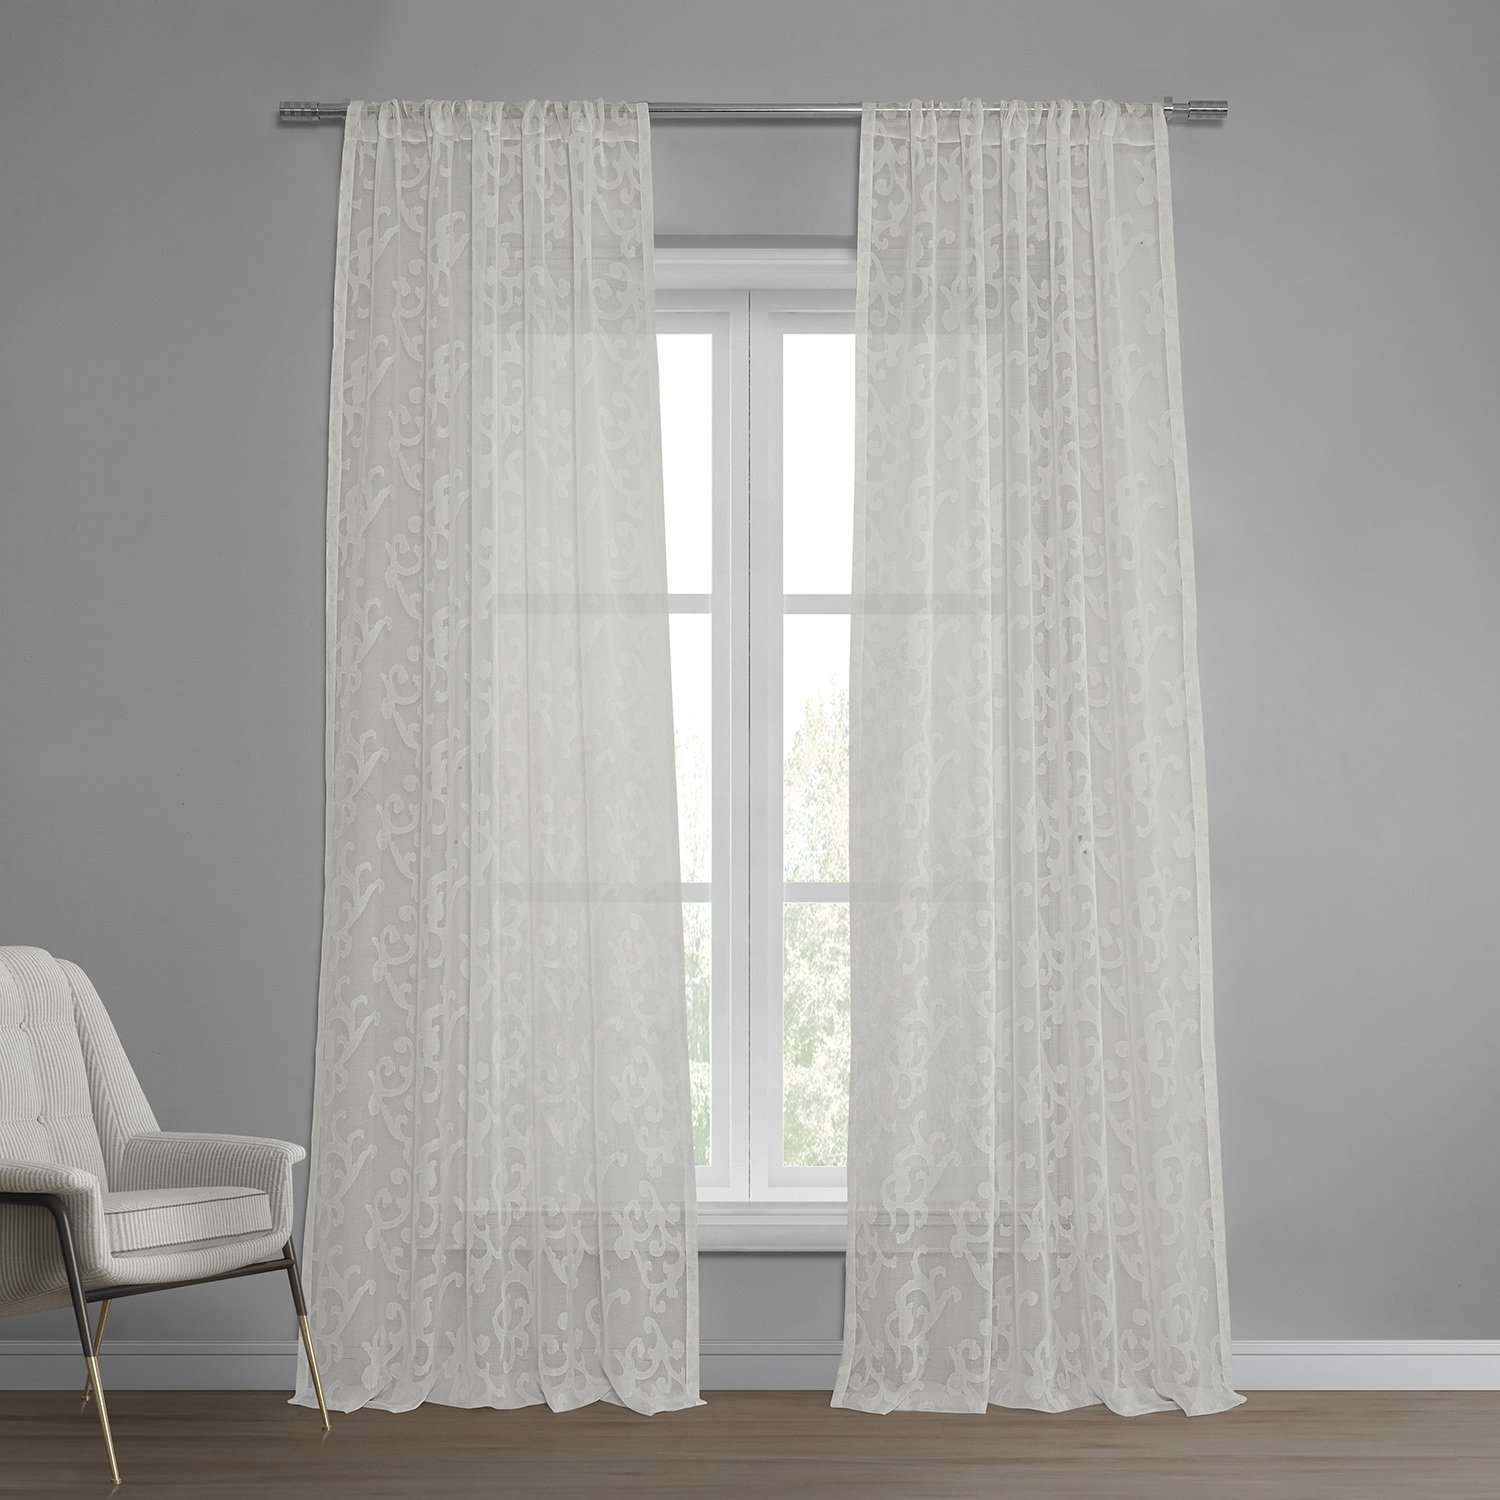 sheer curtains and drapes  half price drapes - paris scroll patterned faux linen sheer curtain